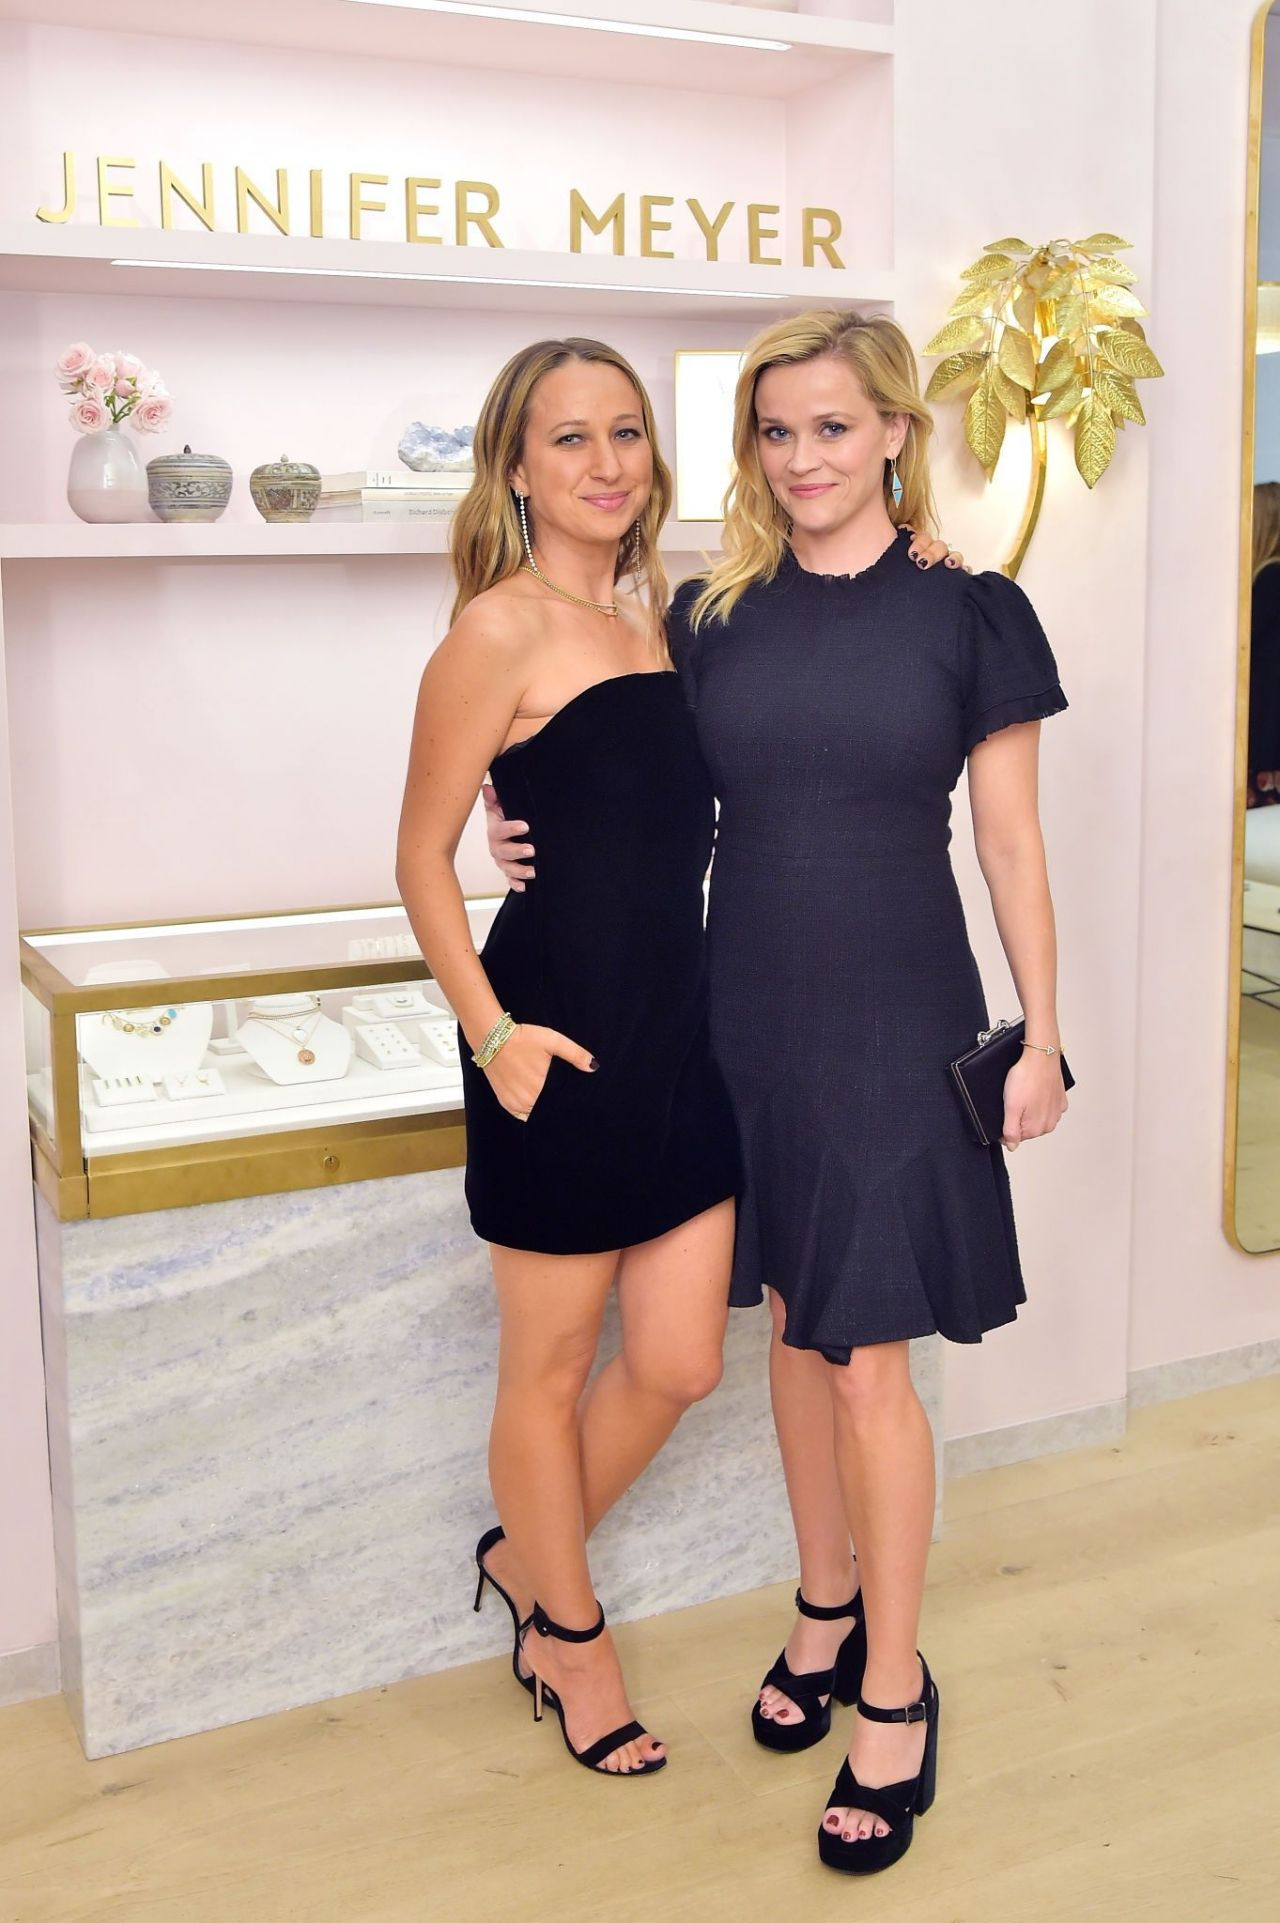 https://celebmafia.com/wp-content/uploads/2018/10/reese-witherspoon-jennifer-meyer-celebrates-first-store-opening-in-palisades-village-10-17-2018-0.jpg